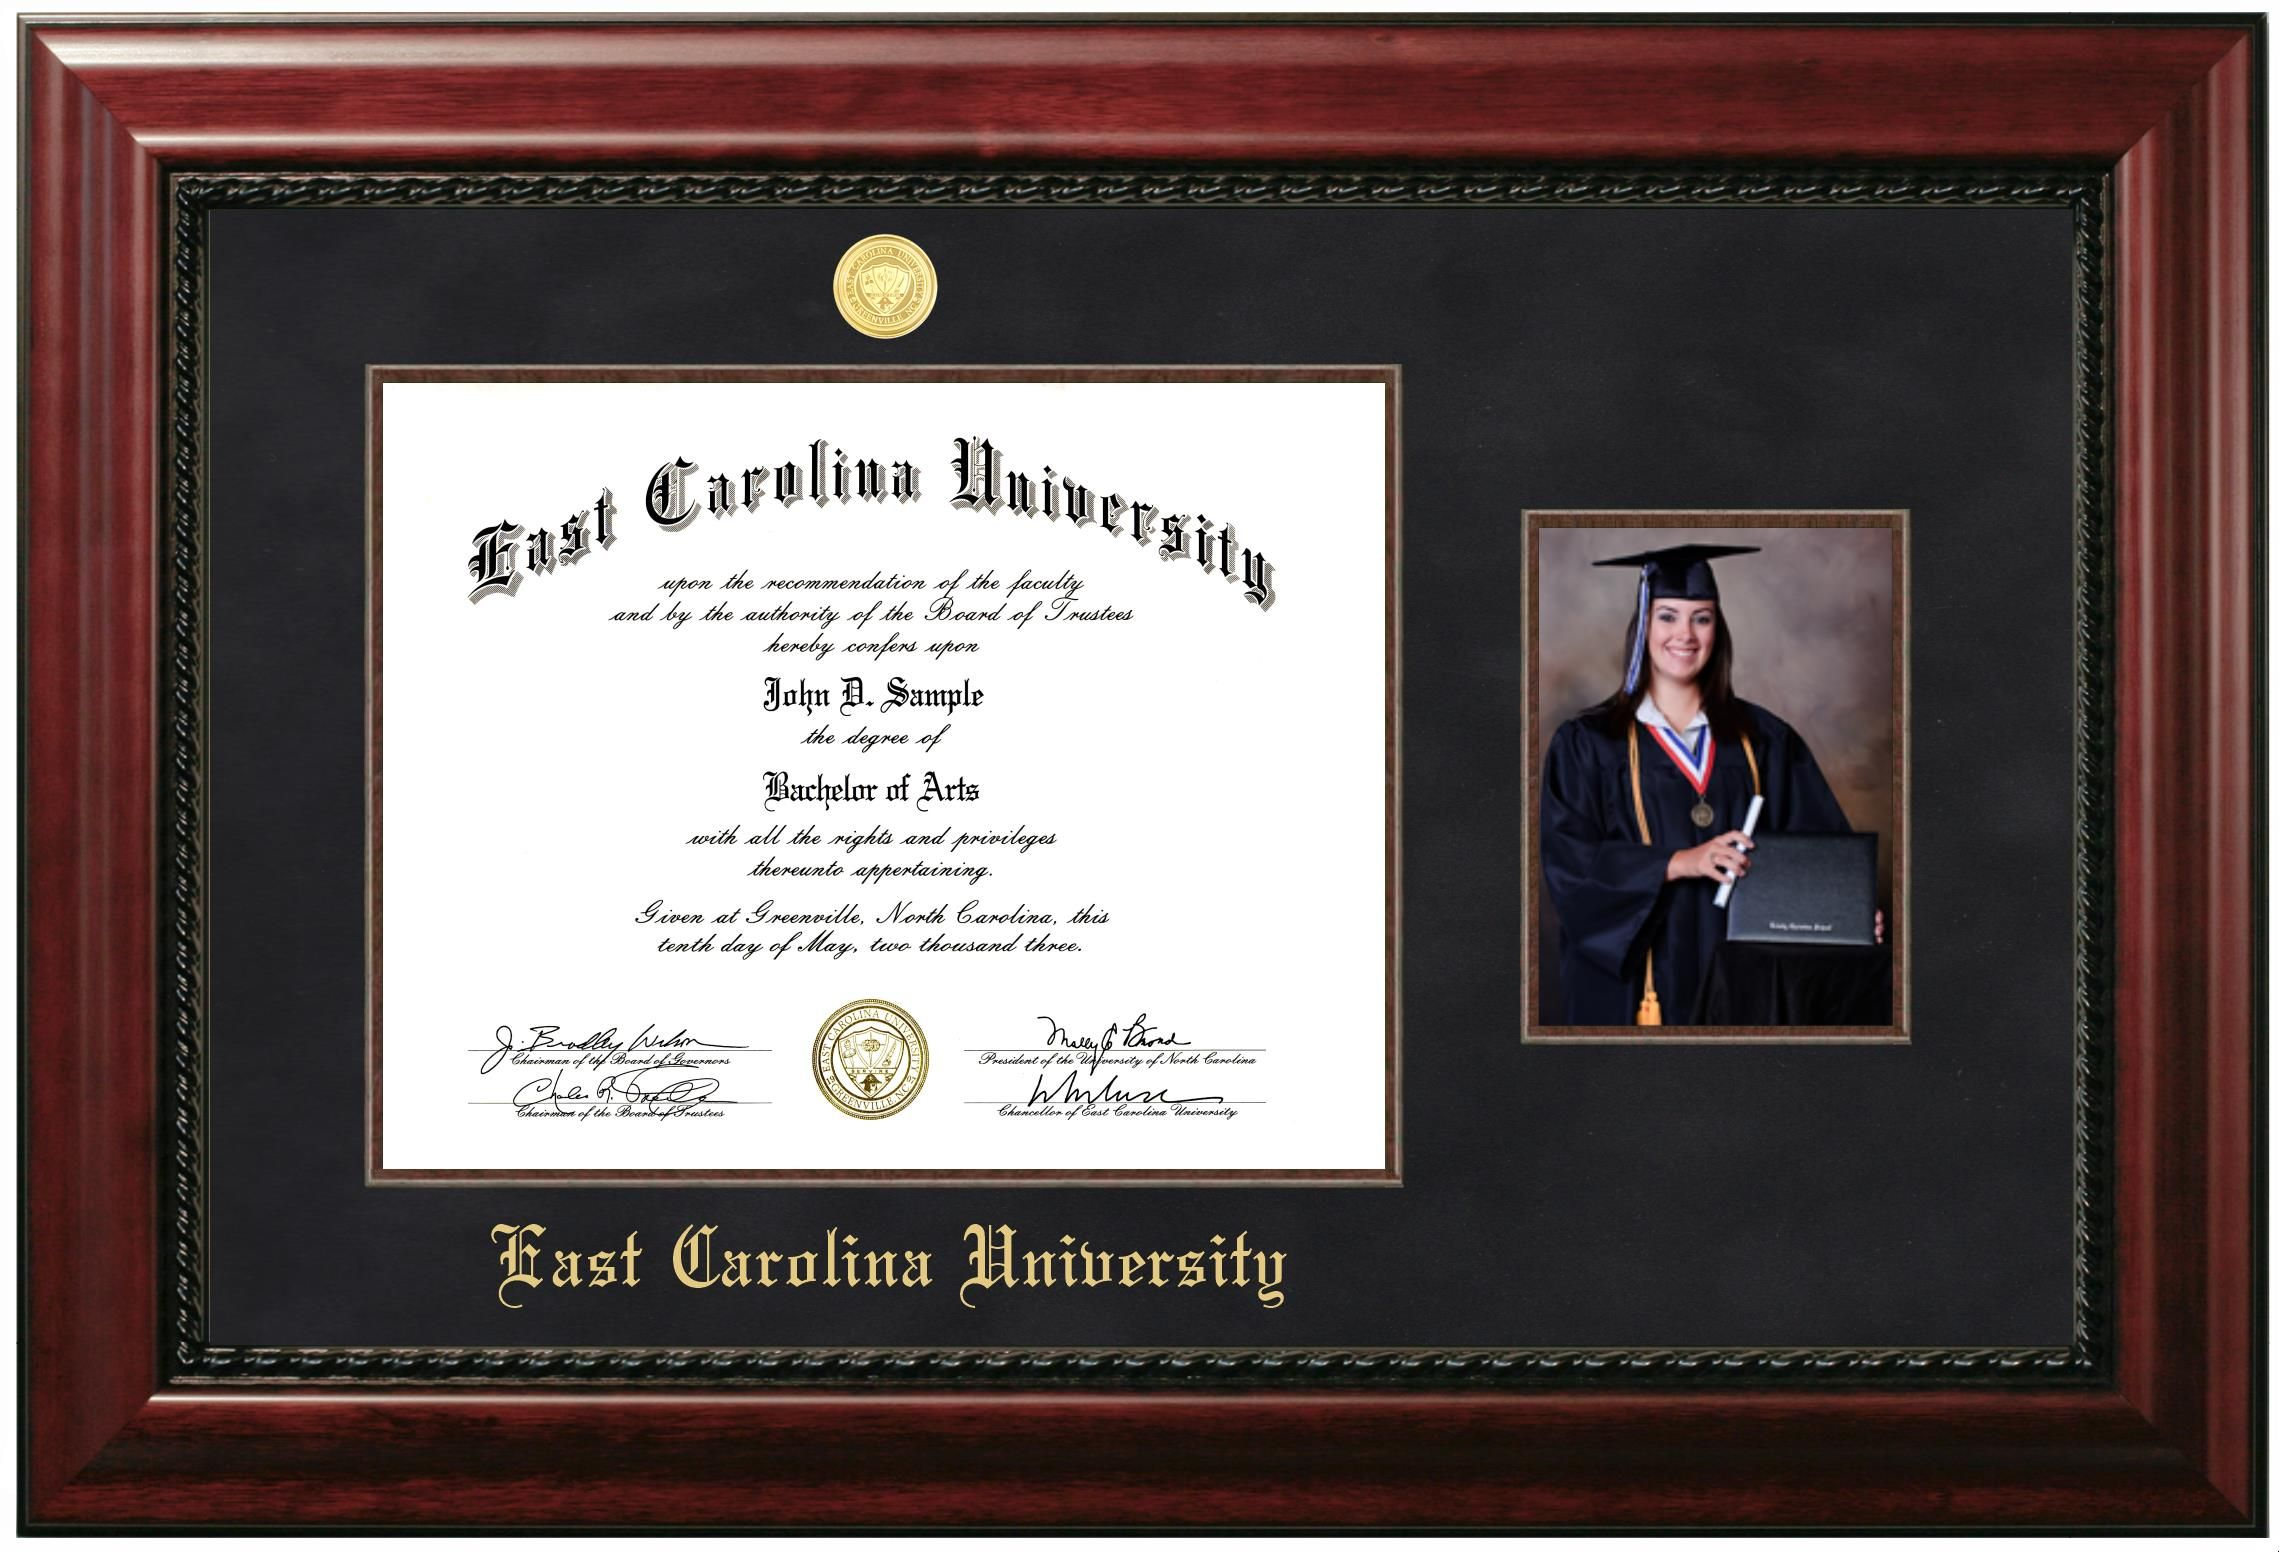 11 x 14 Document Glossy Cherry Mahogany with Gold Trim Diploma Frame